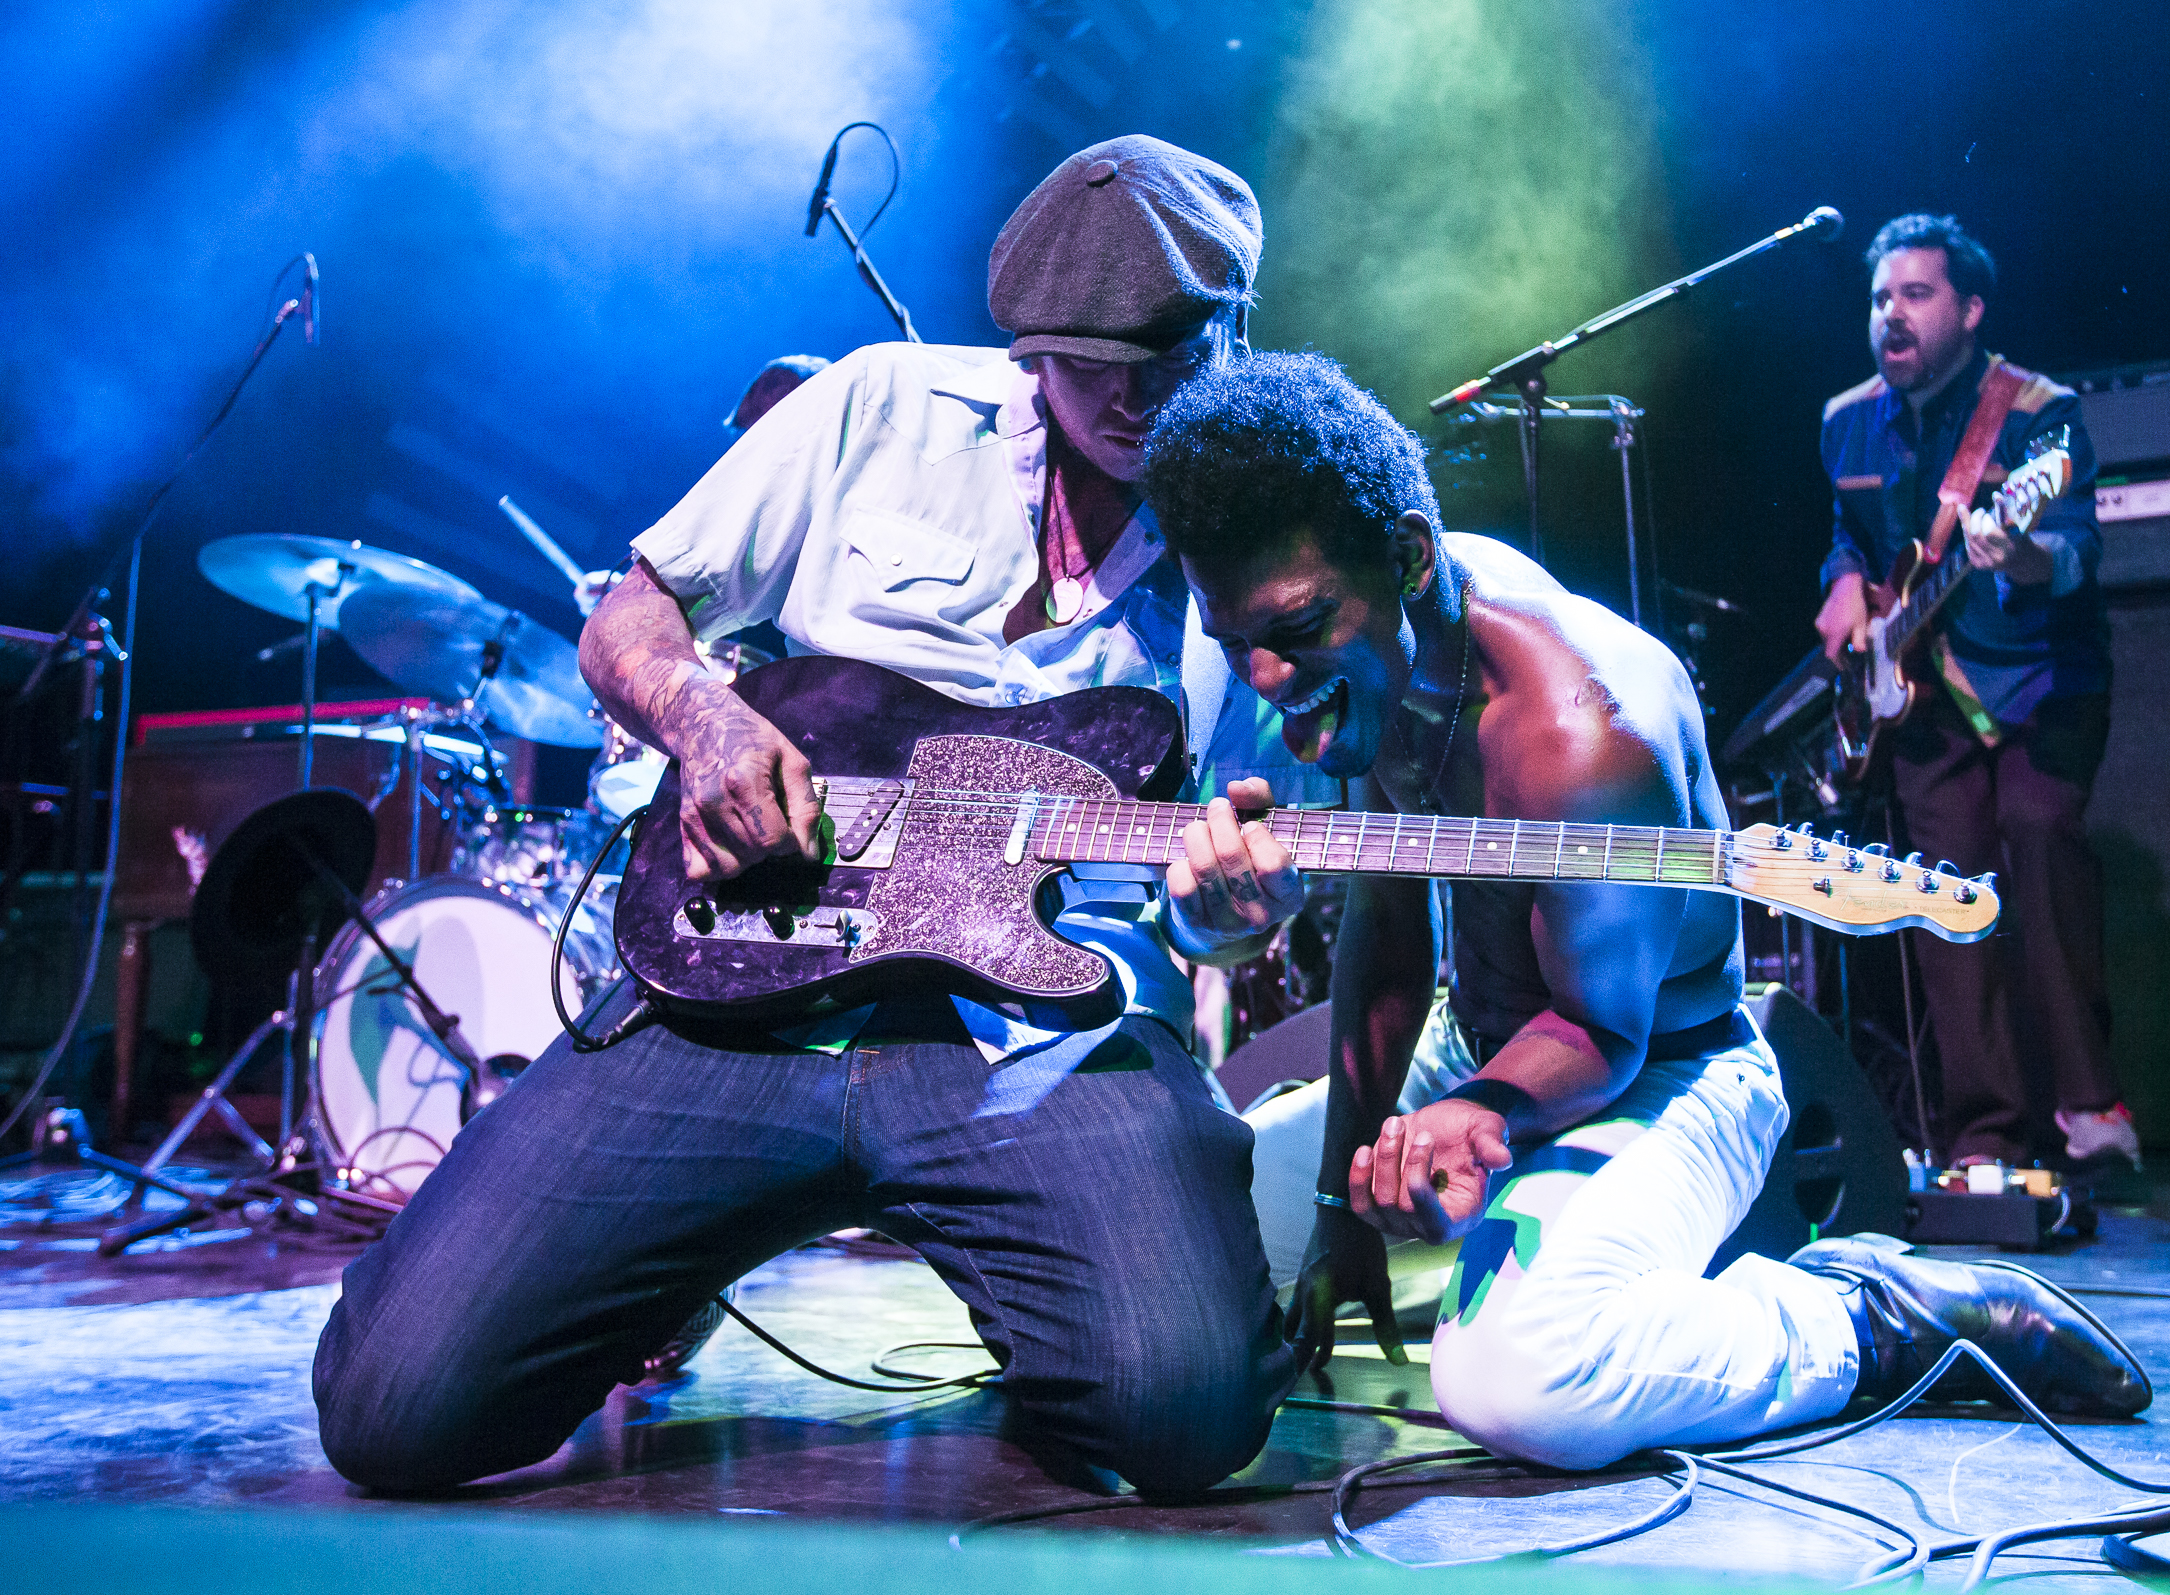 Benjamin Andrew, on guitar, and Ziek McCarter interact during a guitar solo at the end of Con Brio's set at The Wilma Theatre in Missoula, Mont. on Feb. 25, 2016. (Lacey Young, Montana Kaimin)